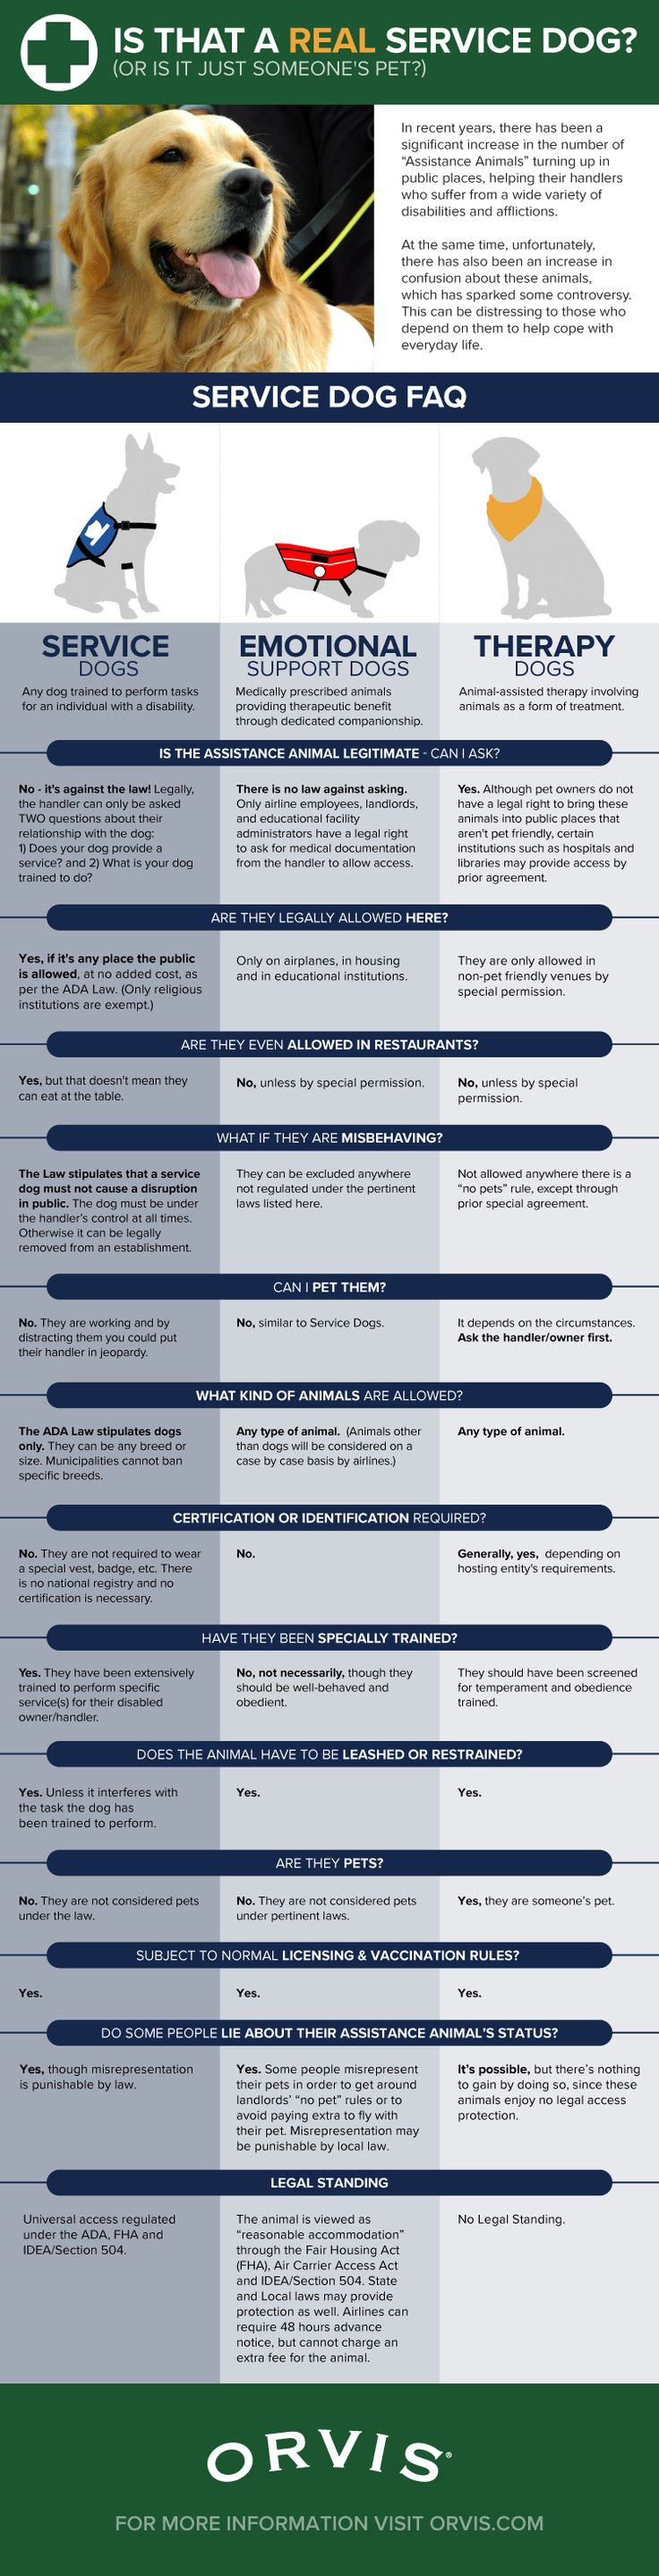 18 best Professional Rants & Venting images on Pinterest | Cartoon ...